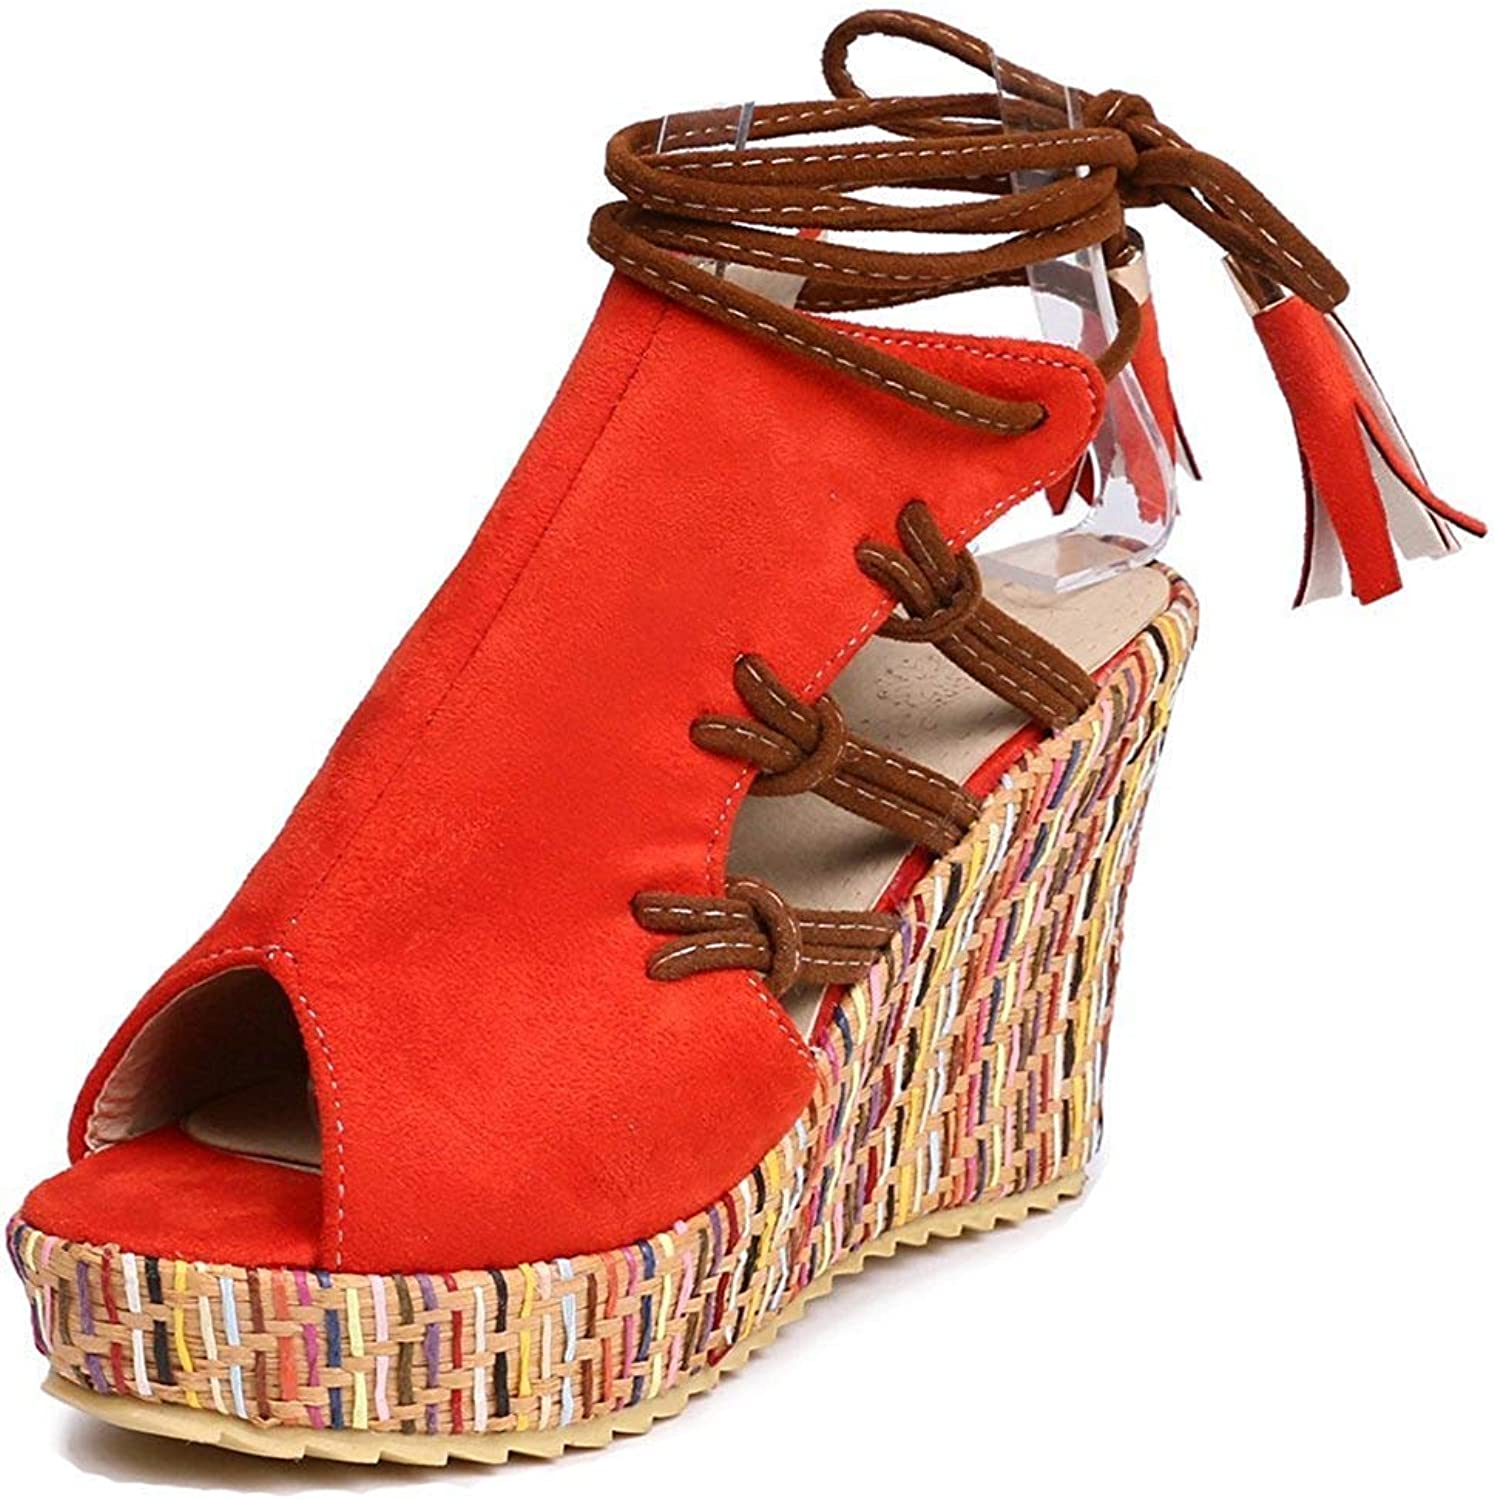 Women's Unique Fringed Self Tie Woven Peep Toe Ankle Wrap Platform High Heel Wedge Sandals